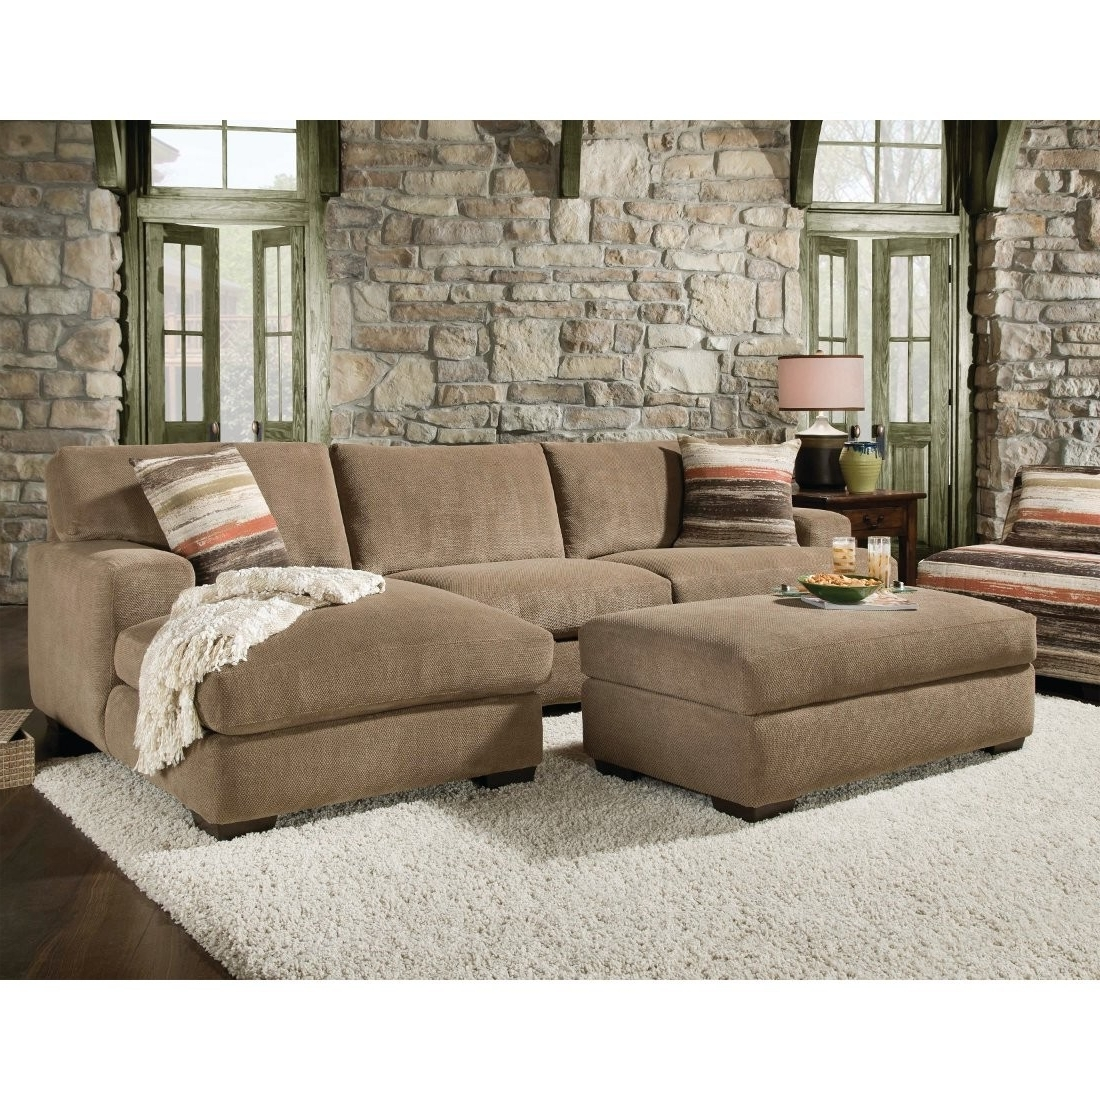 Trendy Beautiful Sectional Sofa With Chaise And Ottoman Pictures Within Sectional Couches With Large Ottoman (View 15 of 15)